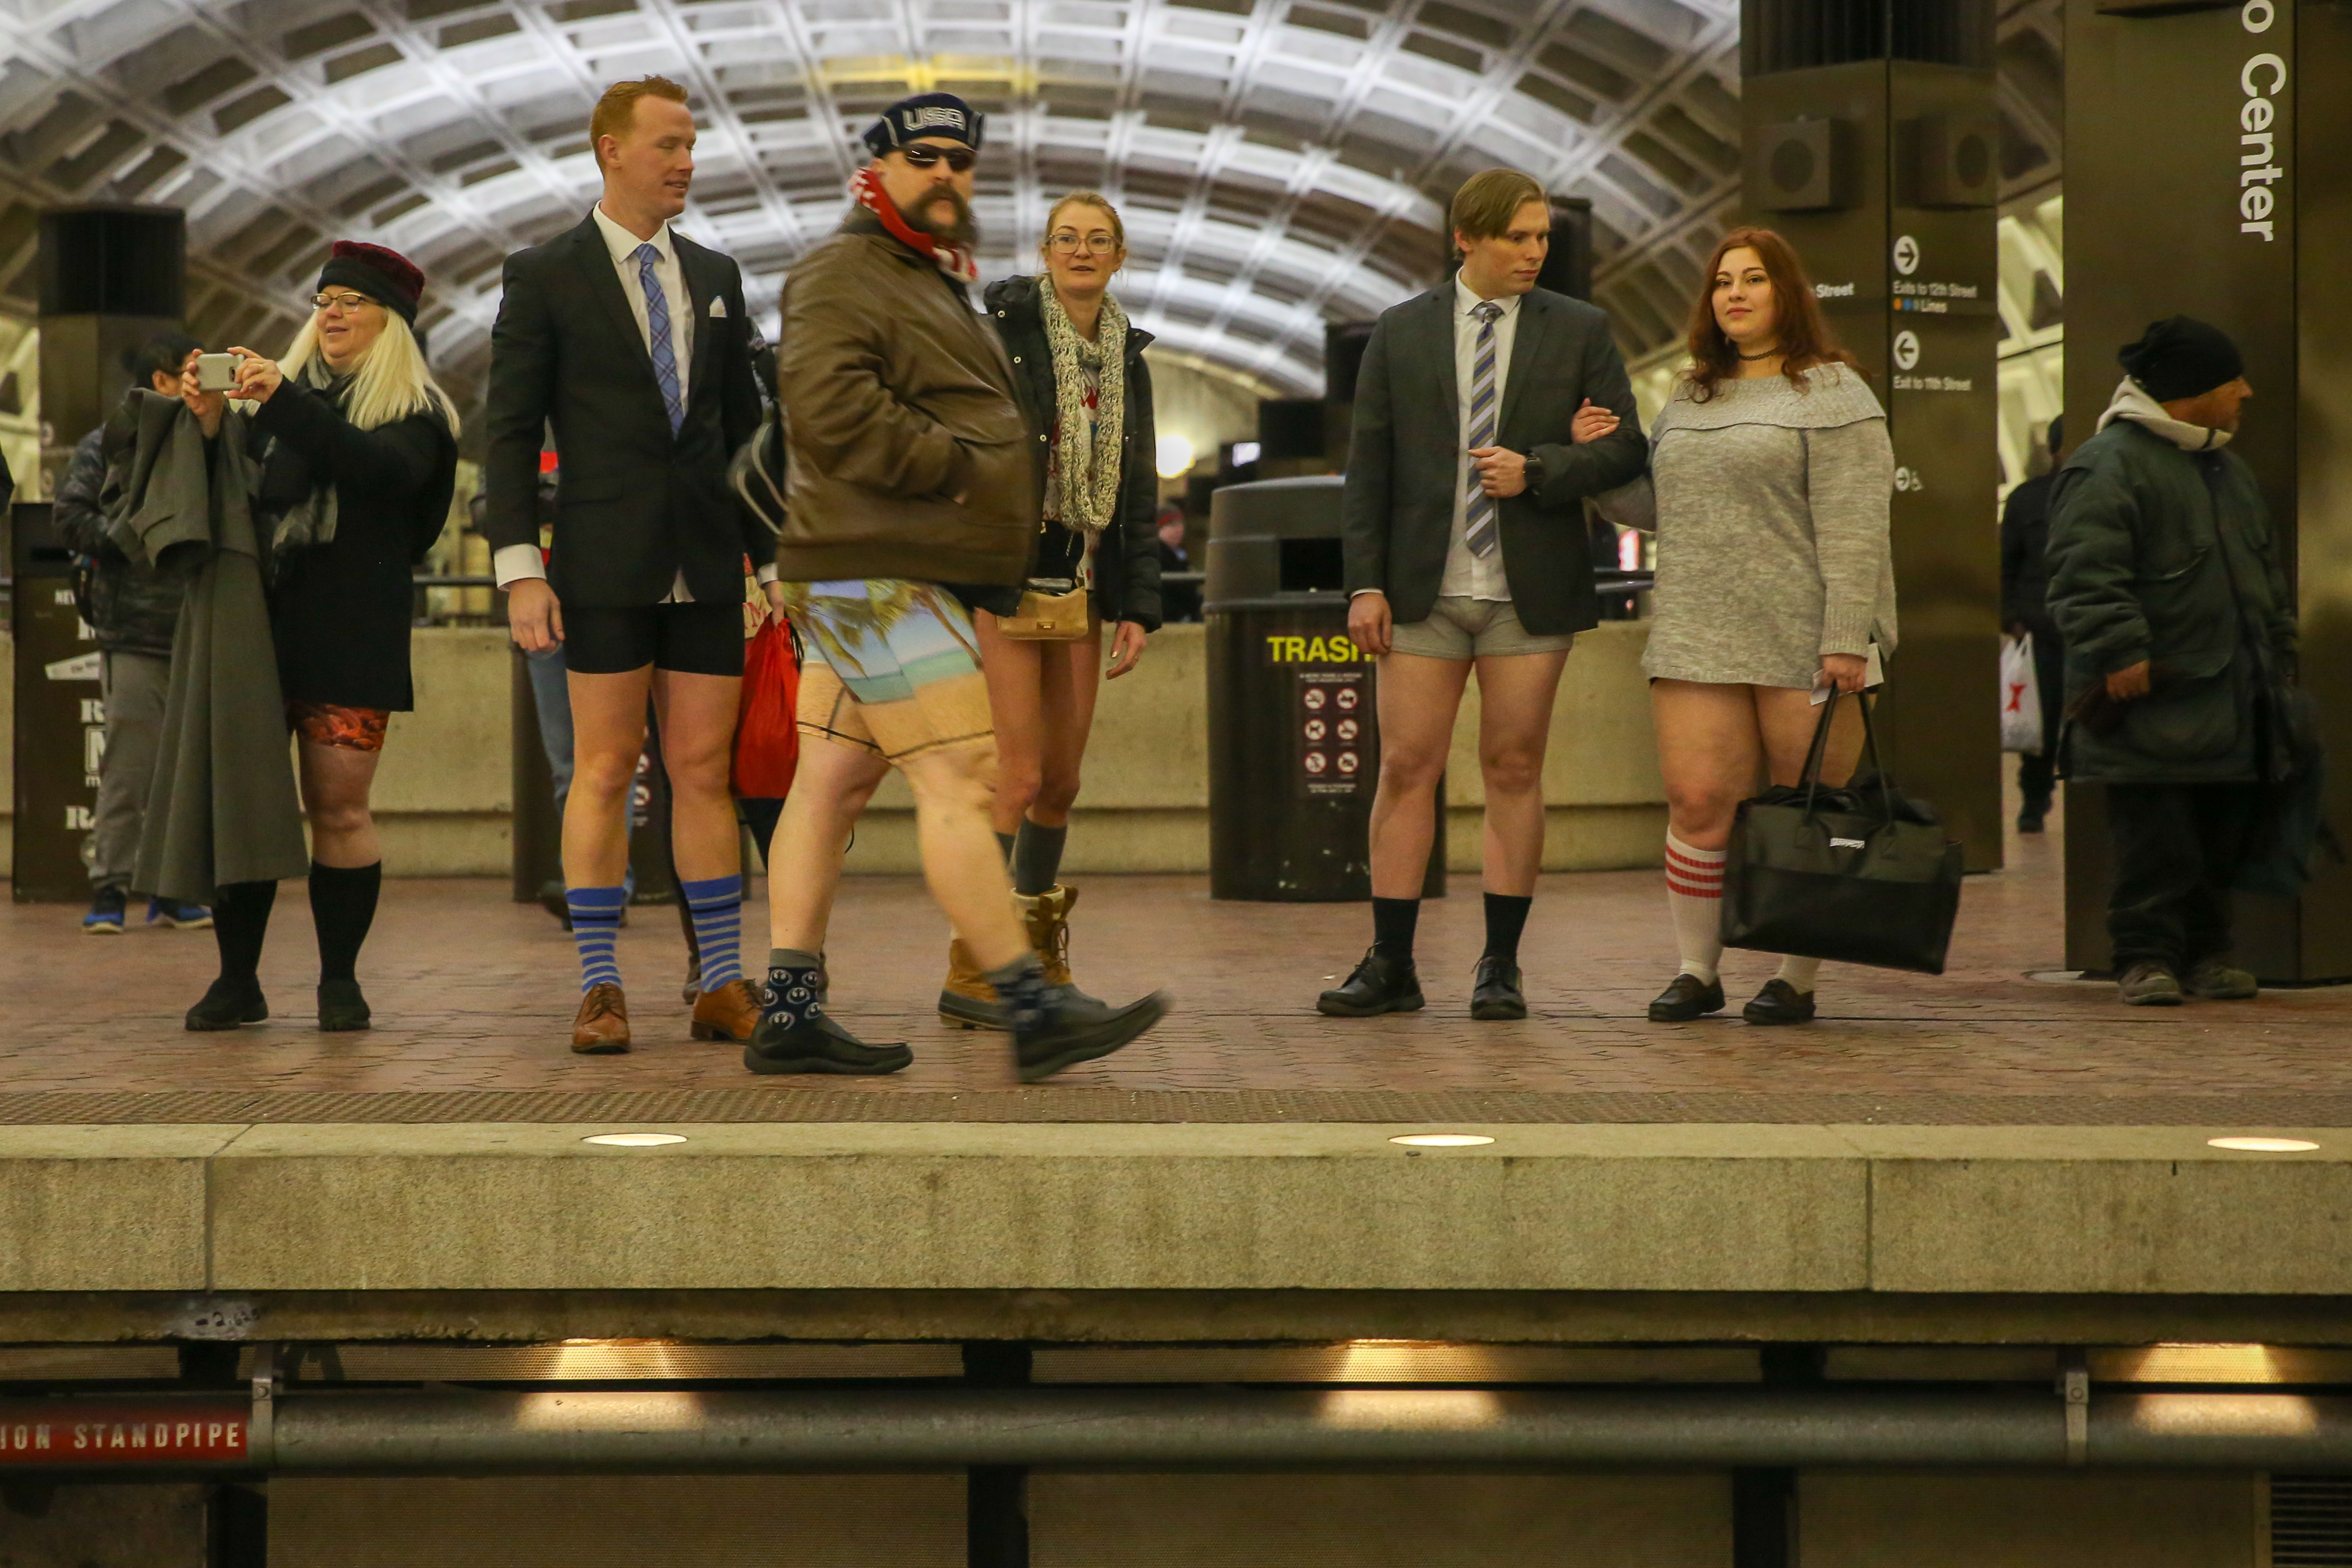 If taking your pants off and riding the metro in your undies just for funsies is your jam, then this is the event for you. Sunday, January 13, 3 p.m., L'Enfant Metro.  (Image: Amanda Andrade-Rhoades/DC Refined)